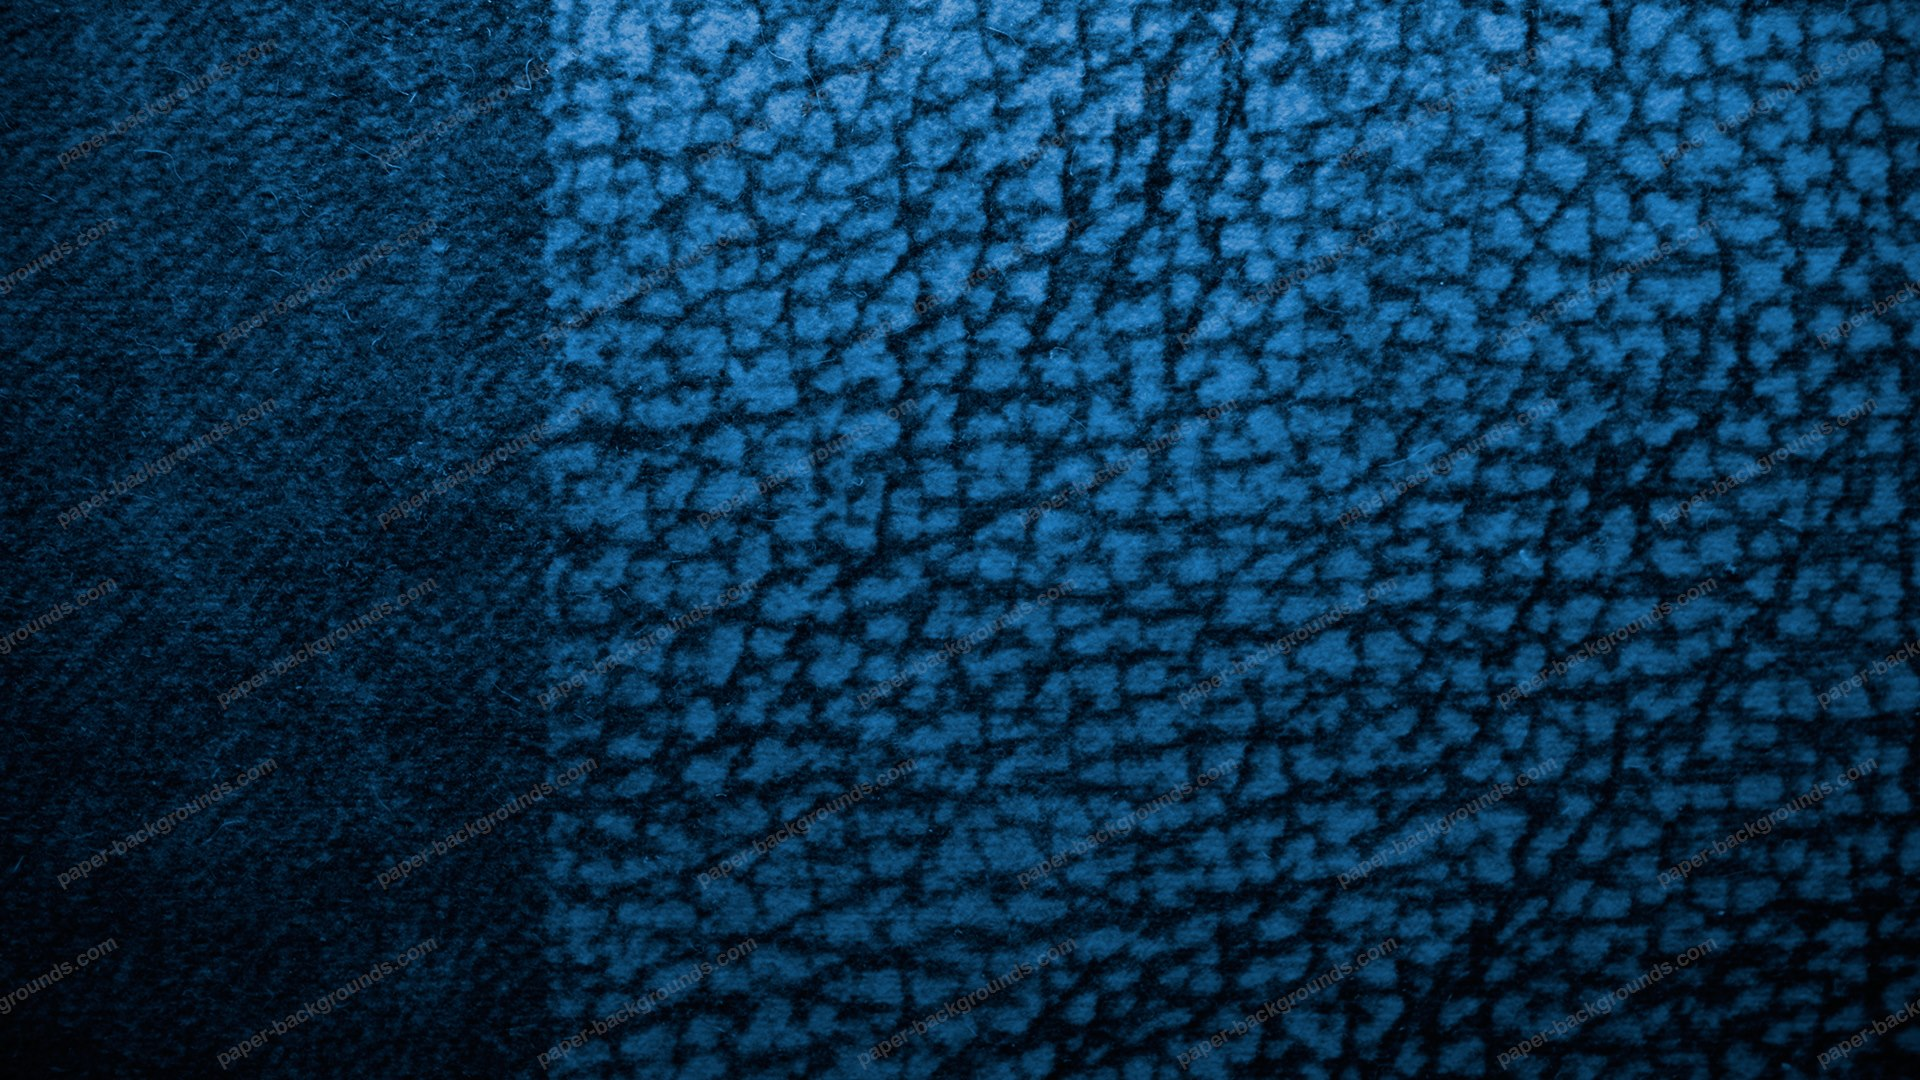 Blue Fabric Creative Background HD 1920 x 1080p